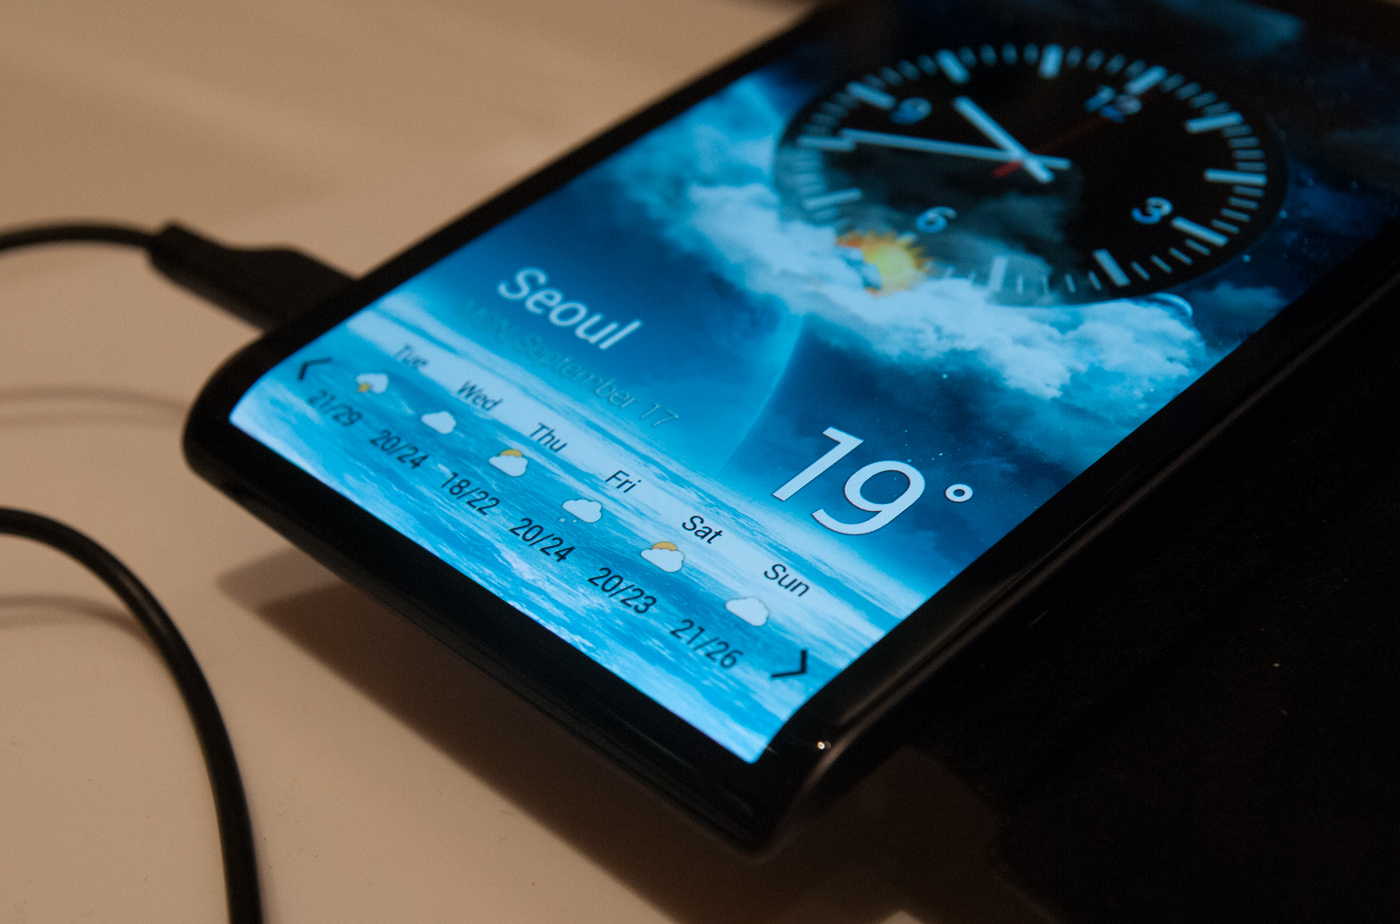 display will find its way into whatever Galaxy S 4 ends up being